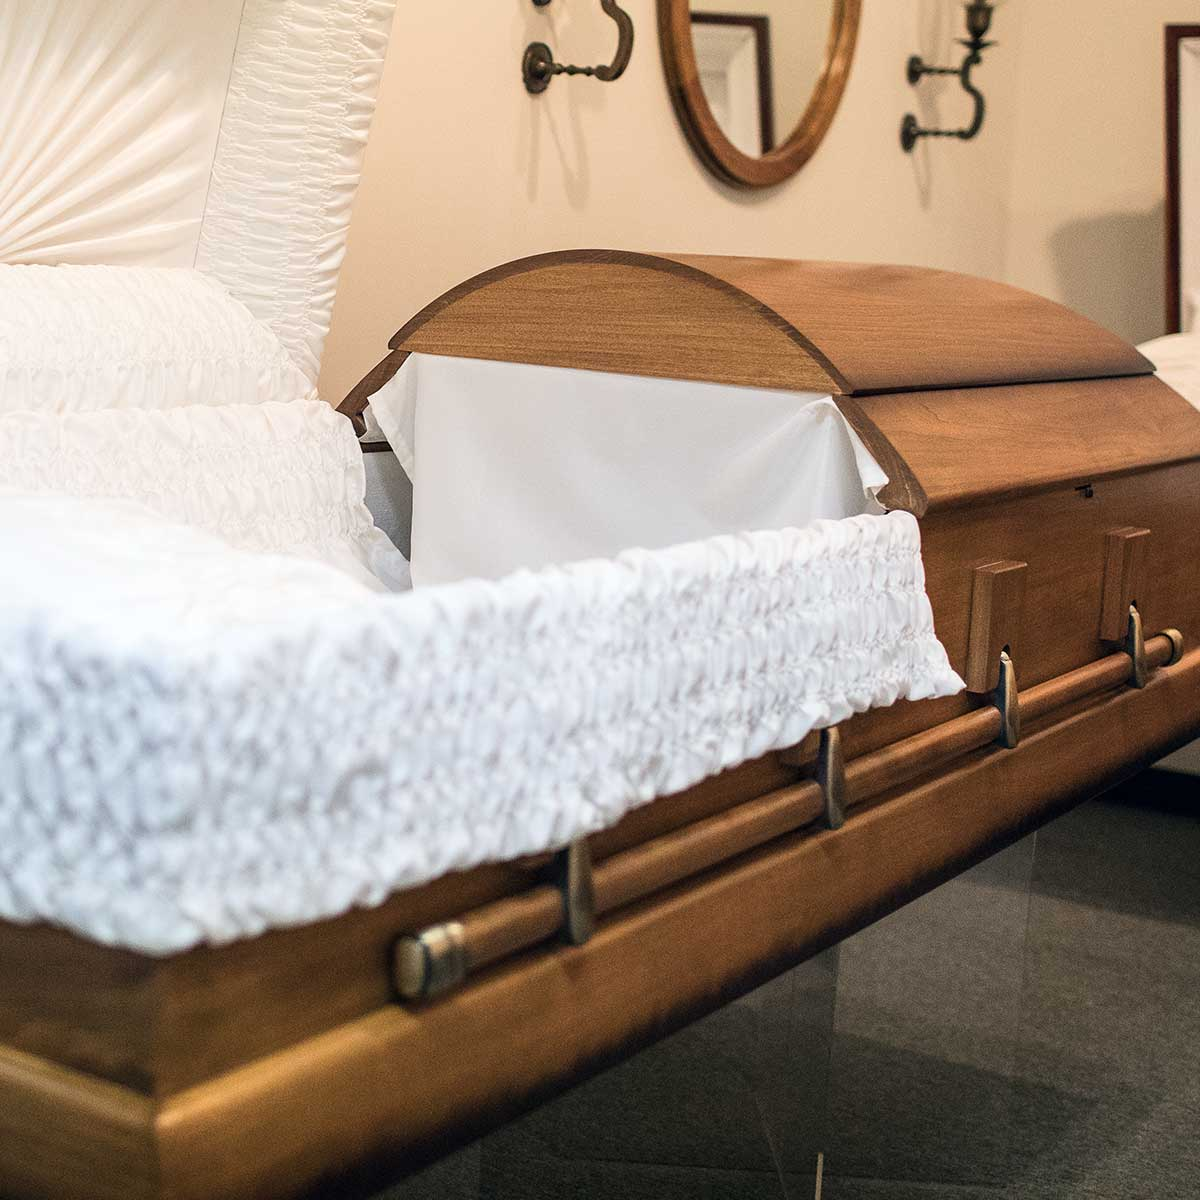 Wooden casket funeral services options